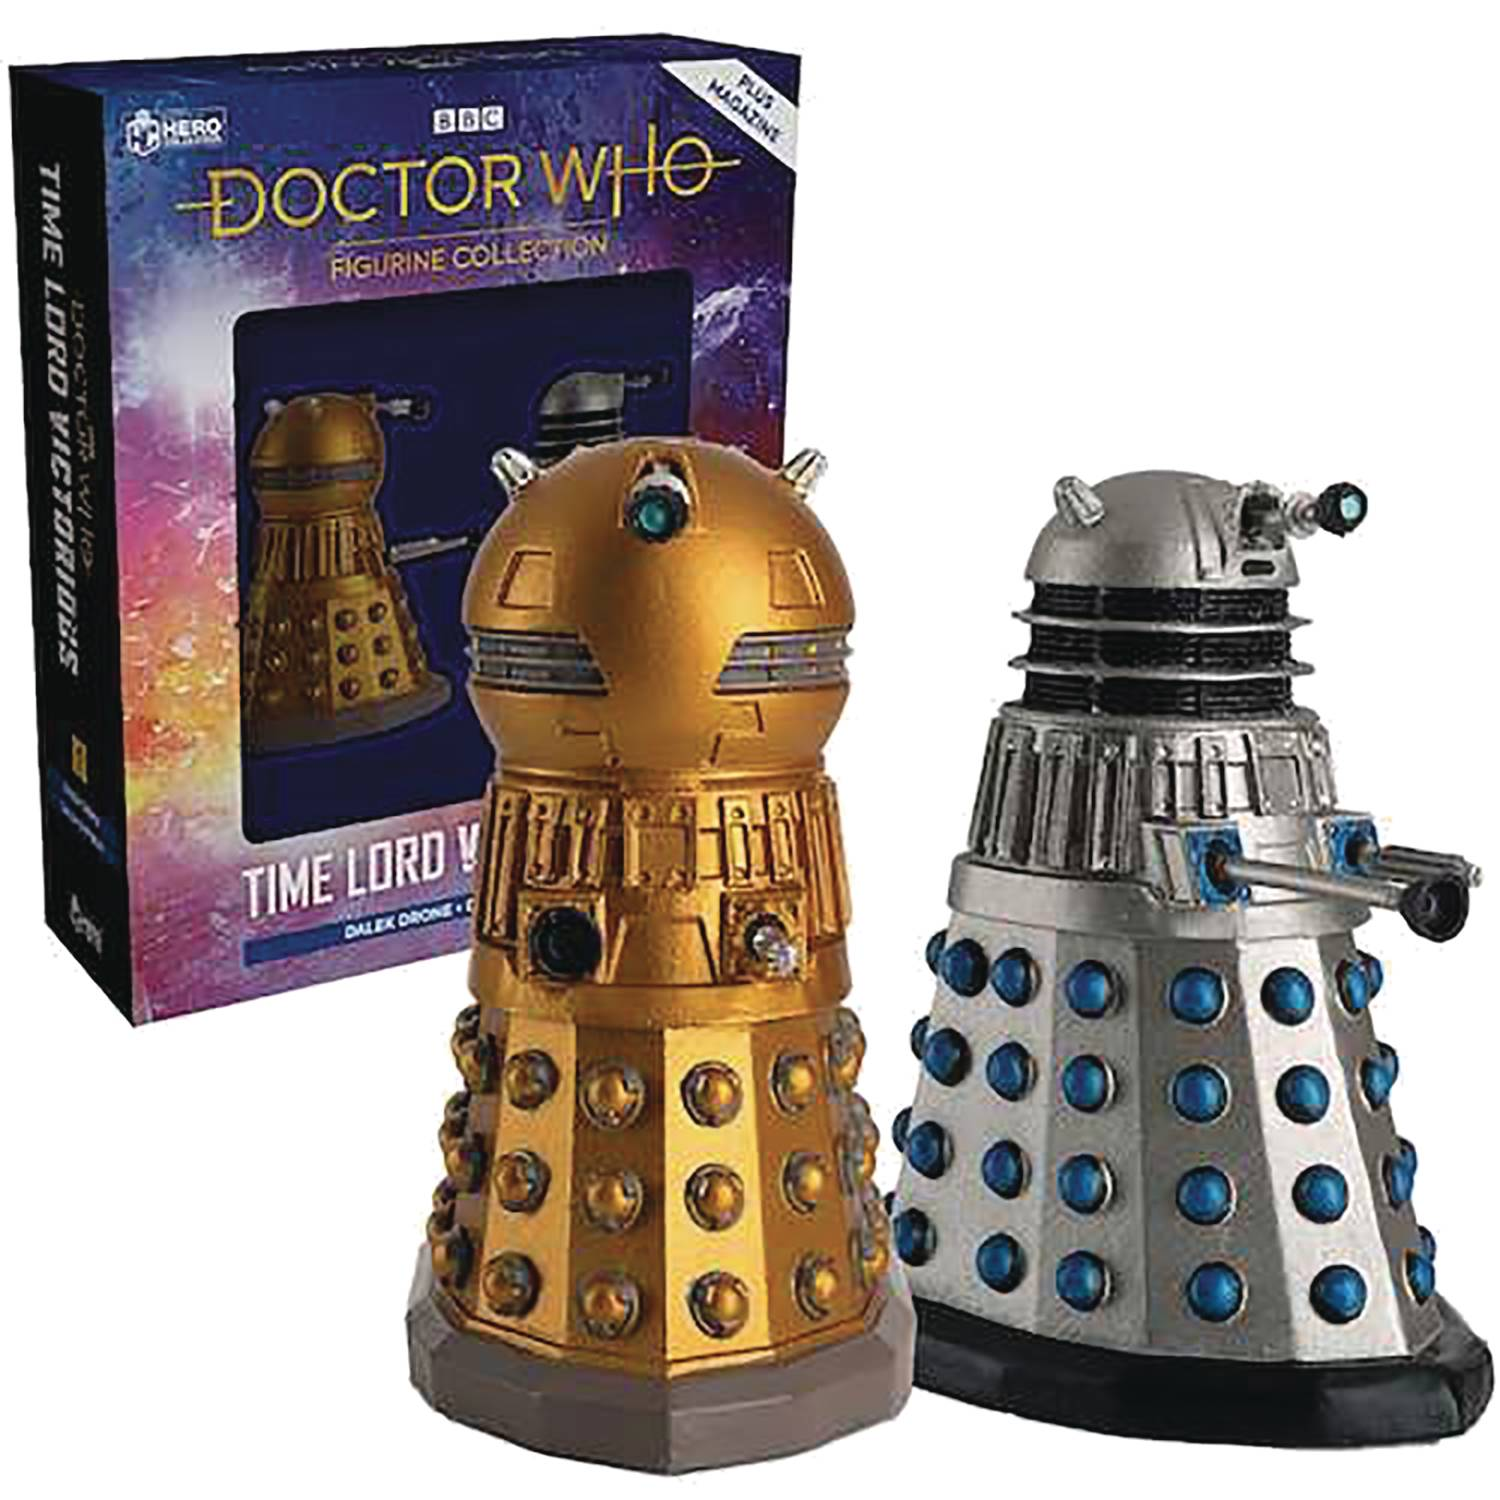 DOCTOR WHO TIME LORD VICTORIOUS FIG MAG